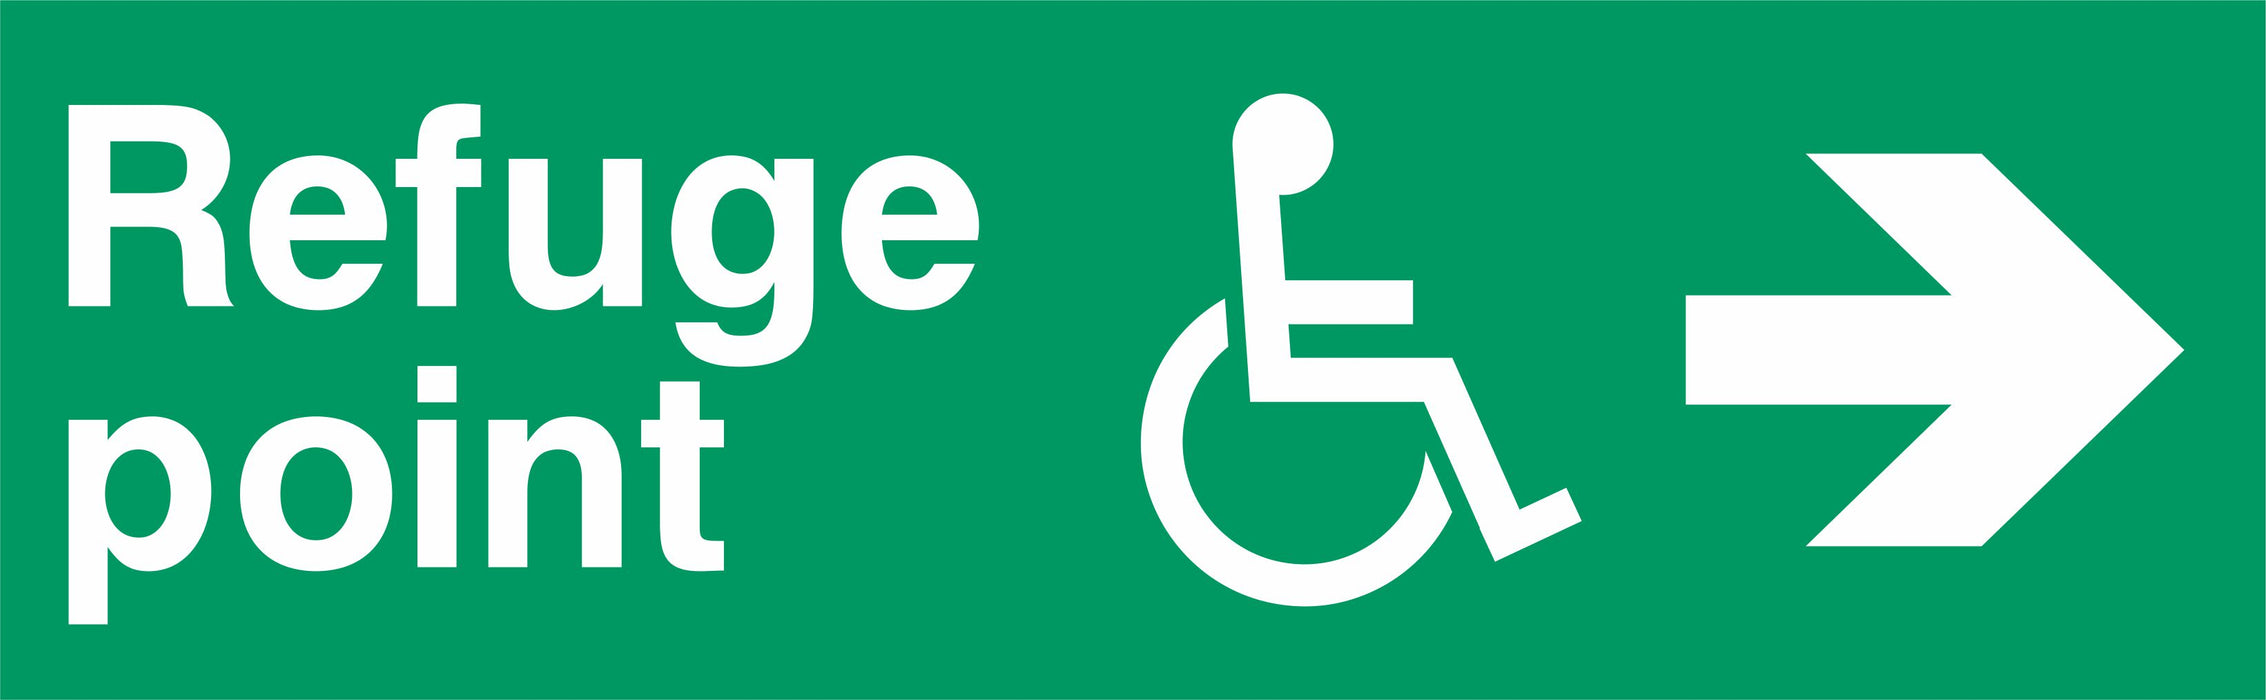 Refuge point  - Disabled Symbol - Right Arrow